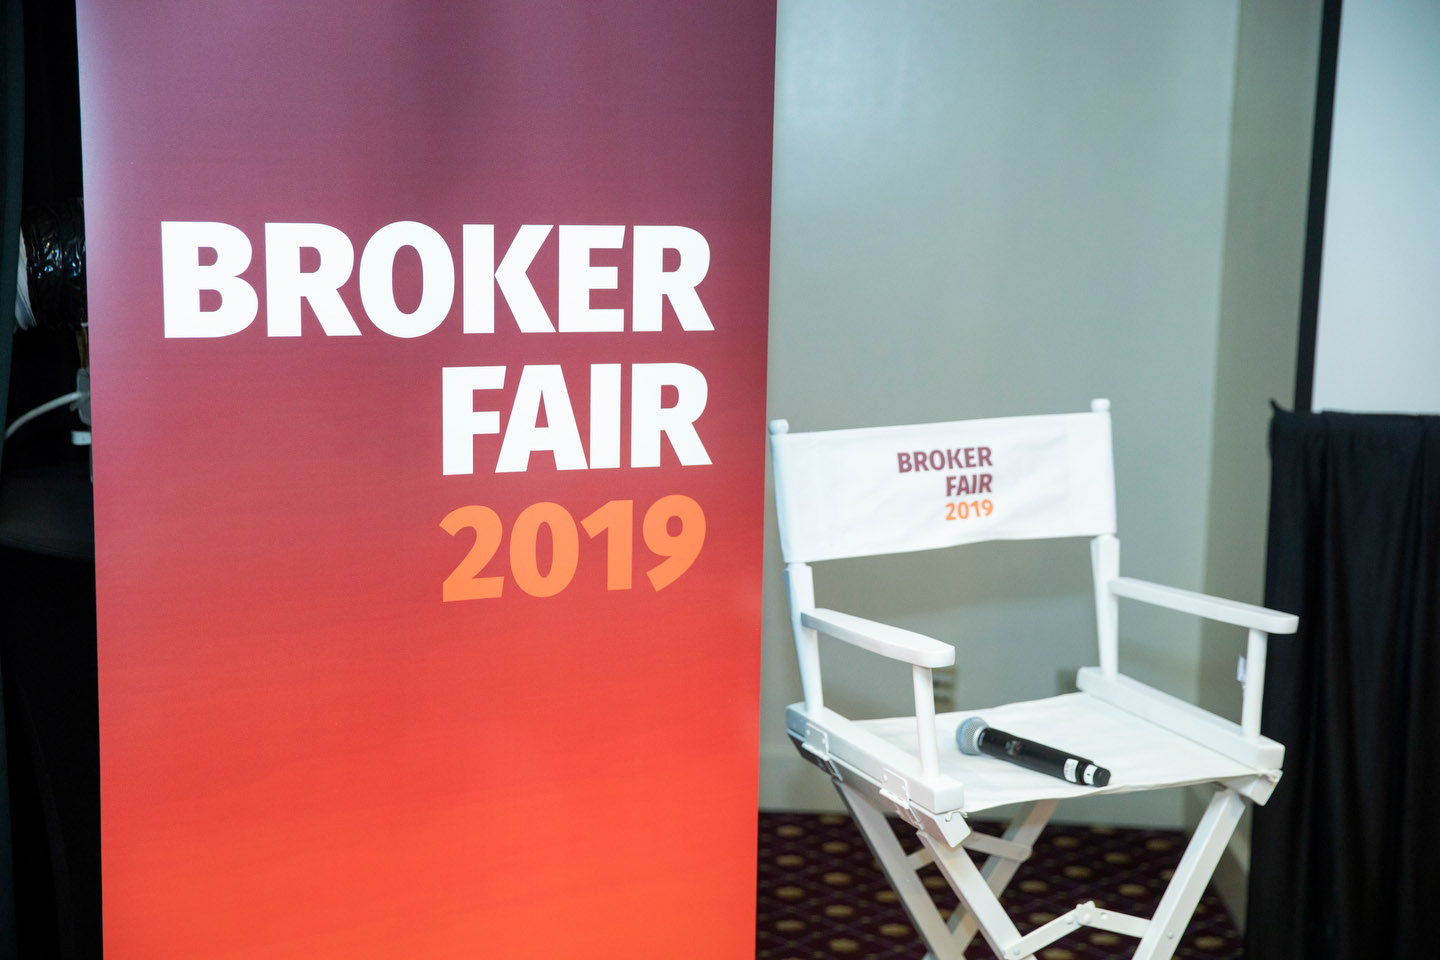 Broker Fair 2019 - Presented by deBanked - 228